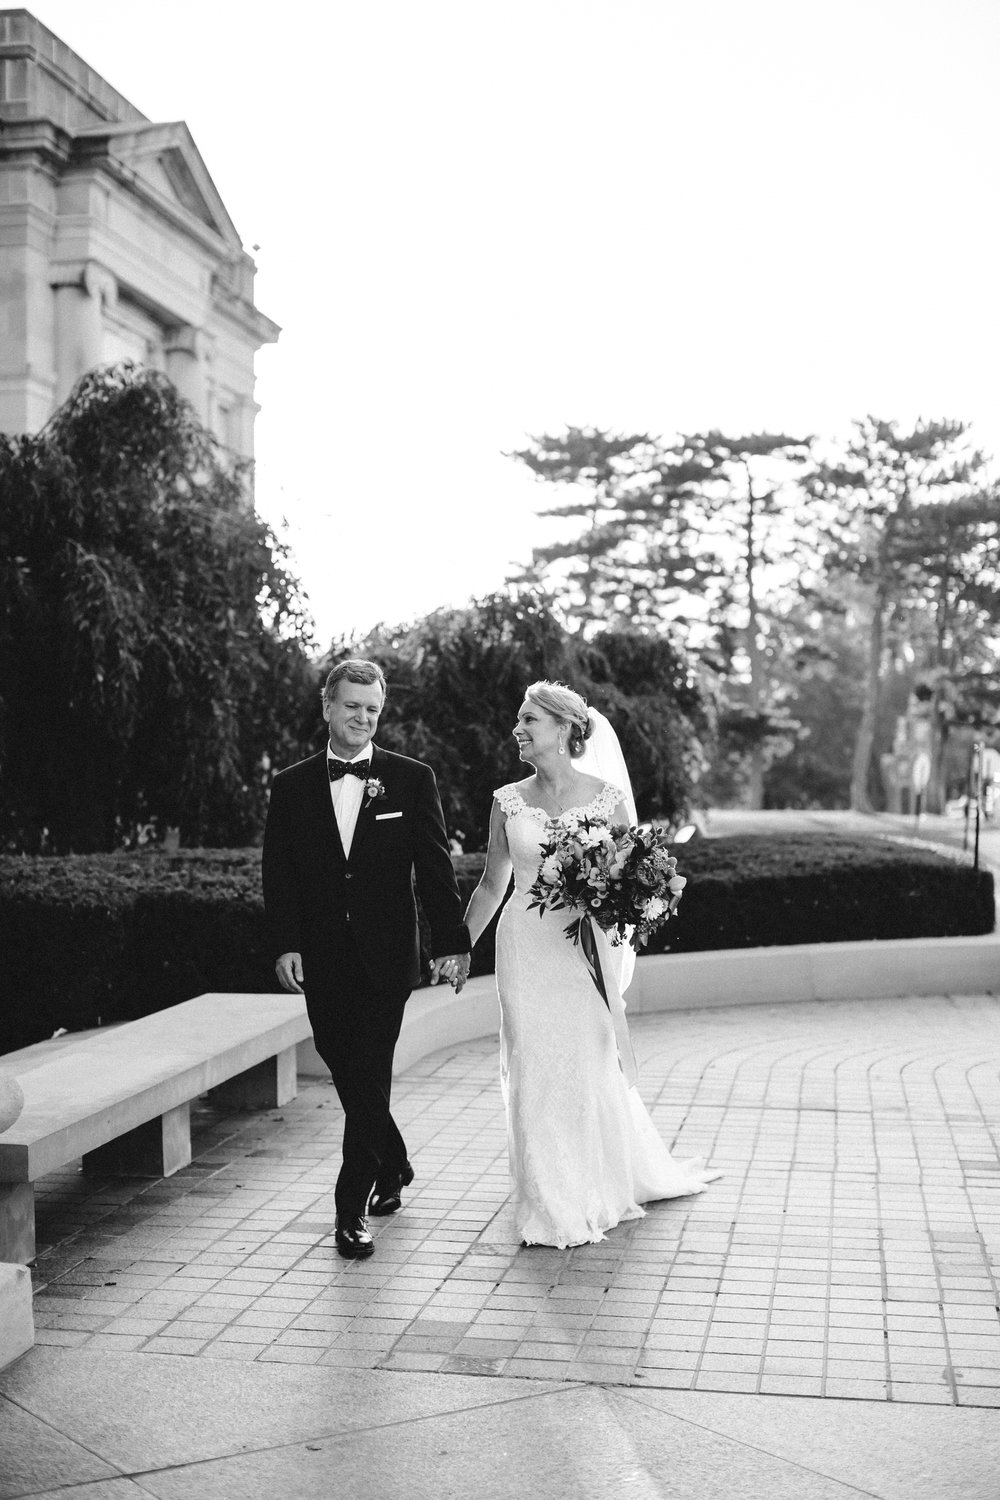 Second wedding, St Louis Art Museum Wedding